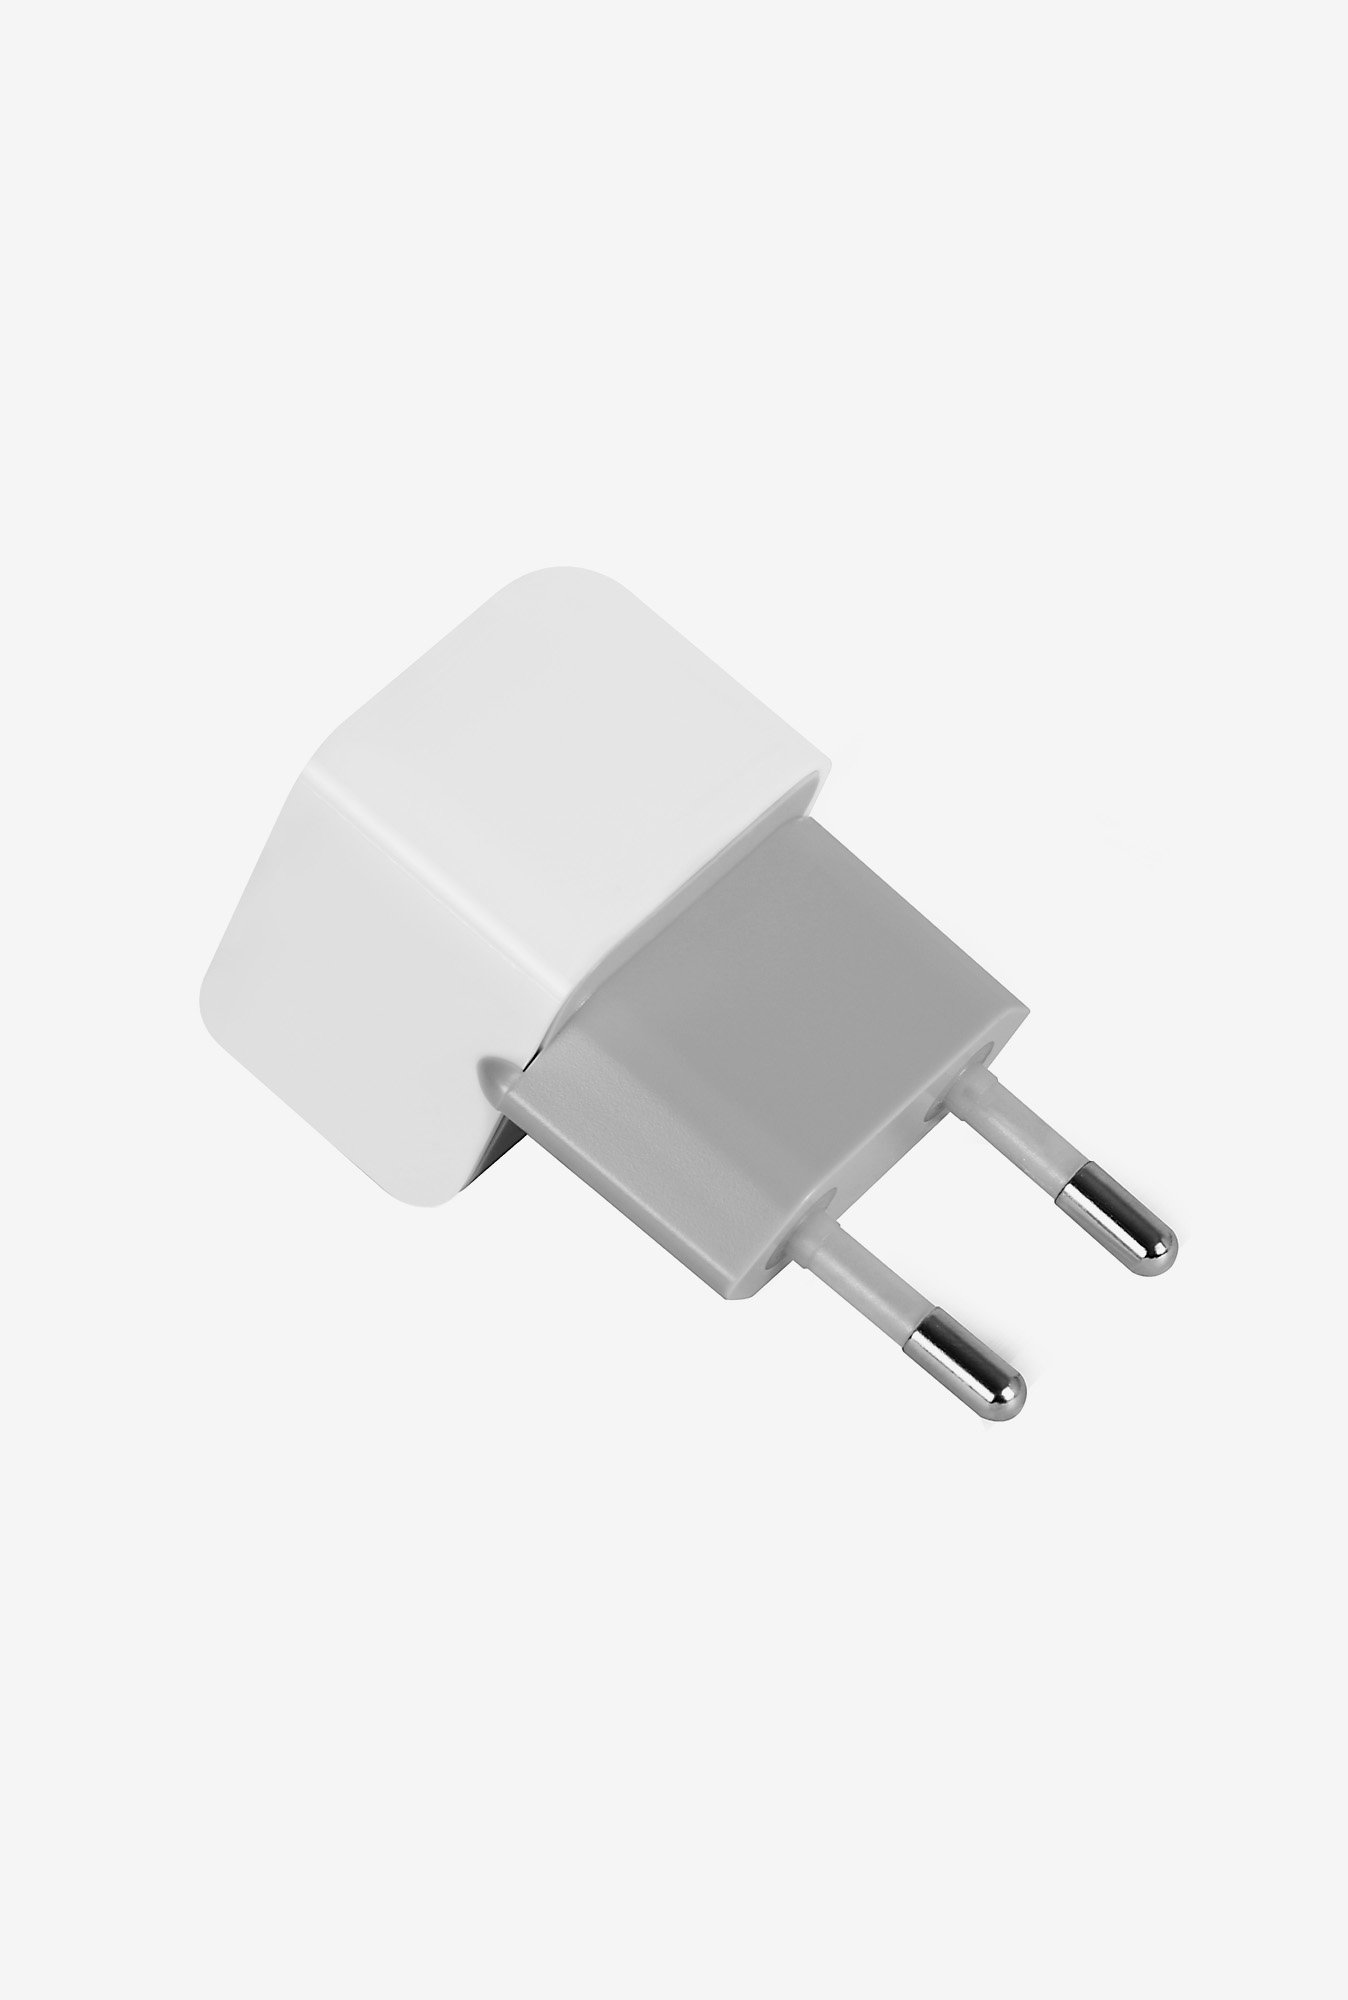 GM 3015 USB Power Travel Adaptor (White)